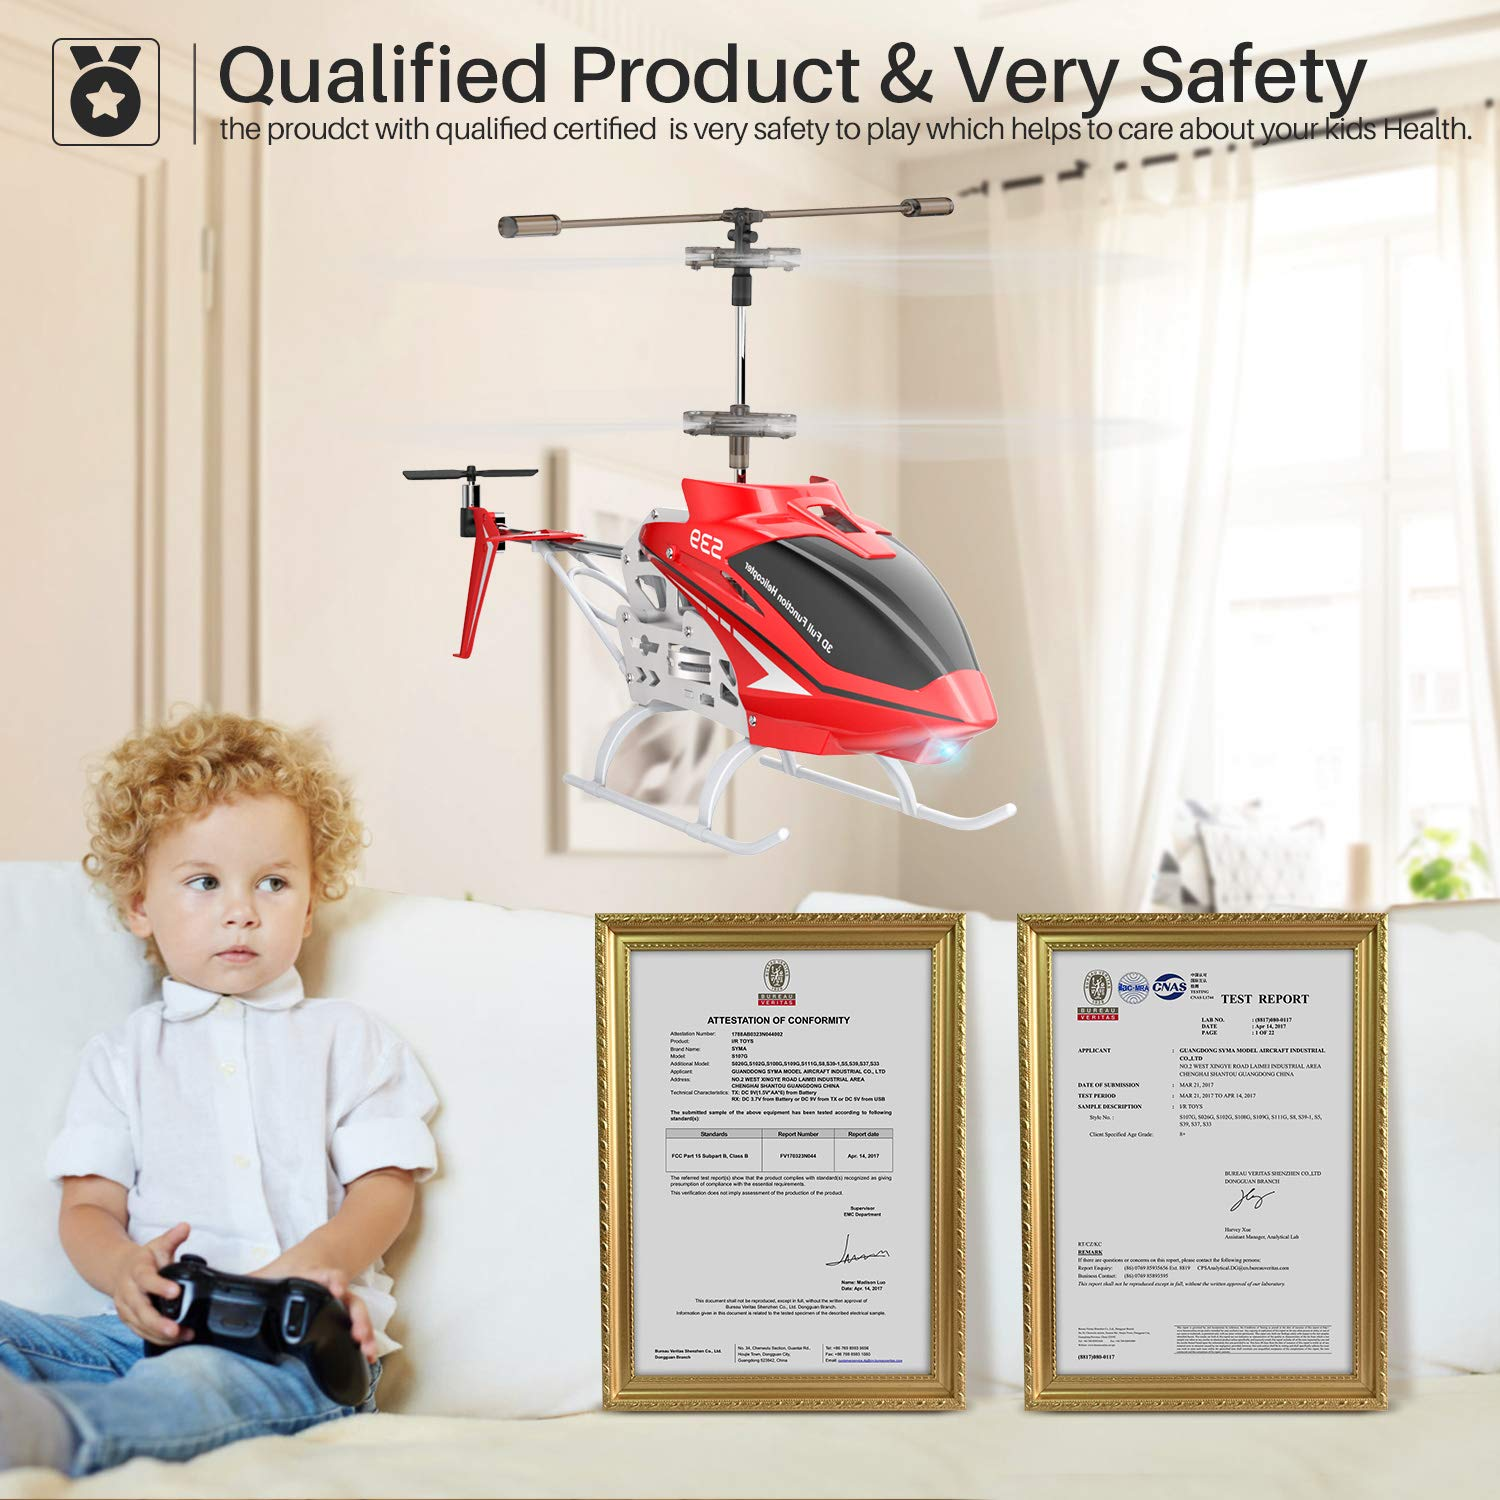 SYMA RC Helicopter, S39 Aircraft with 3.5 Channel,Bigger Size, Sturdy Alloy Material, Gyro Stabilizer and High &Low Speed, Multi-Protection Drone for Kids and Beginners to Play Indoor-Red by SYMA (Image #5)